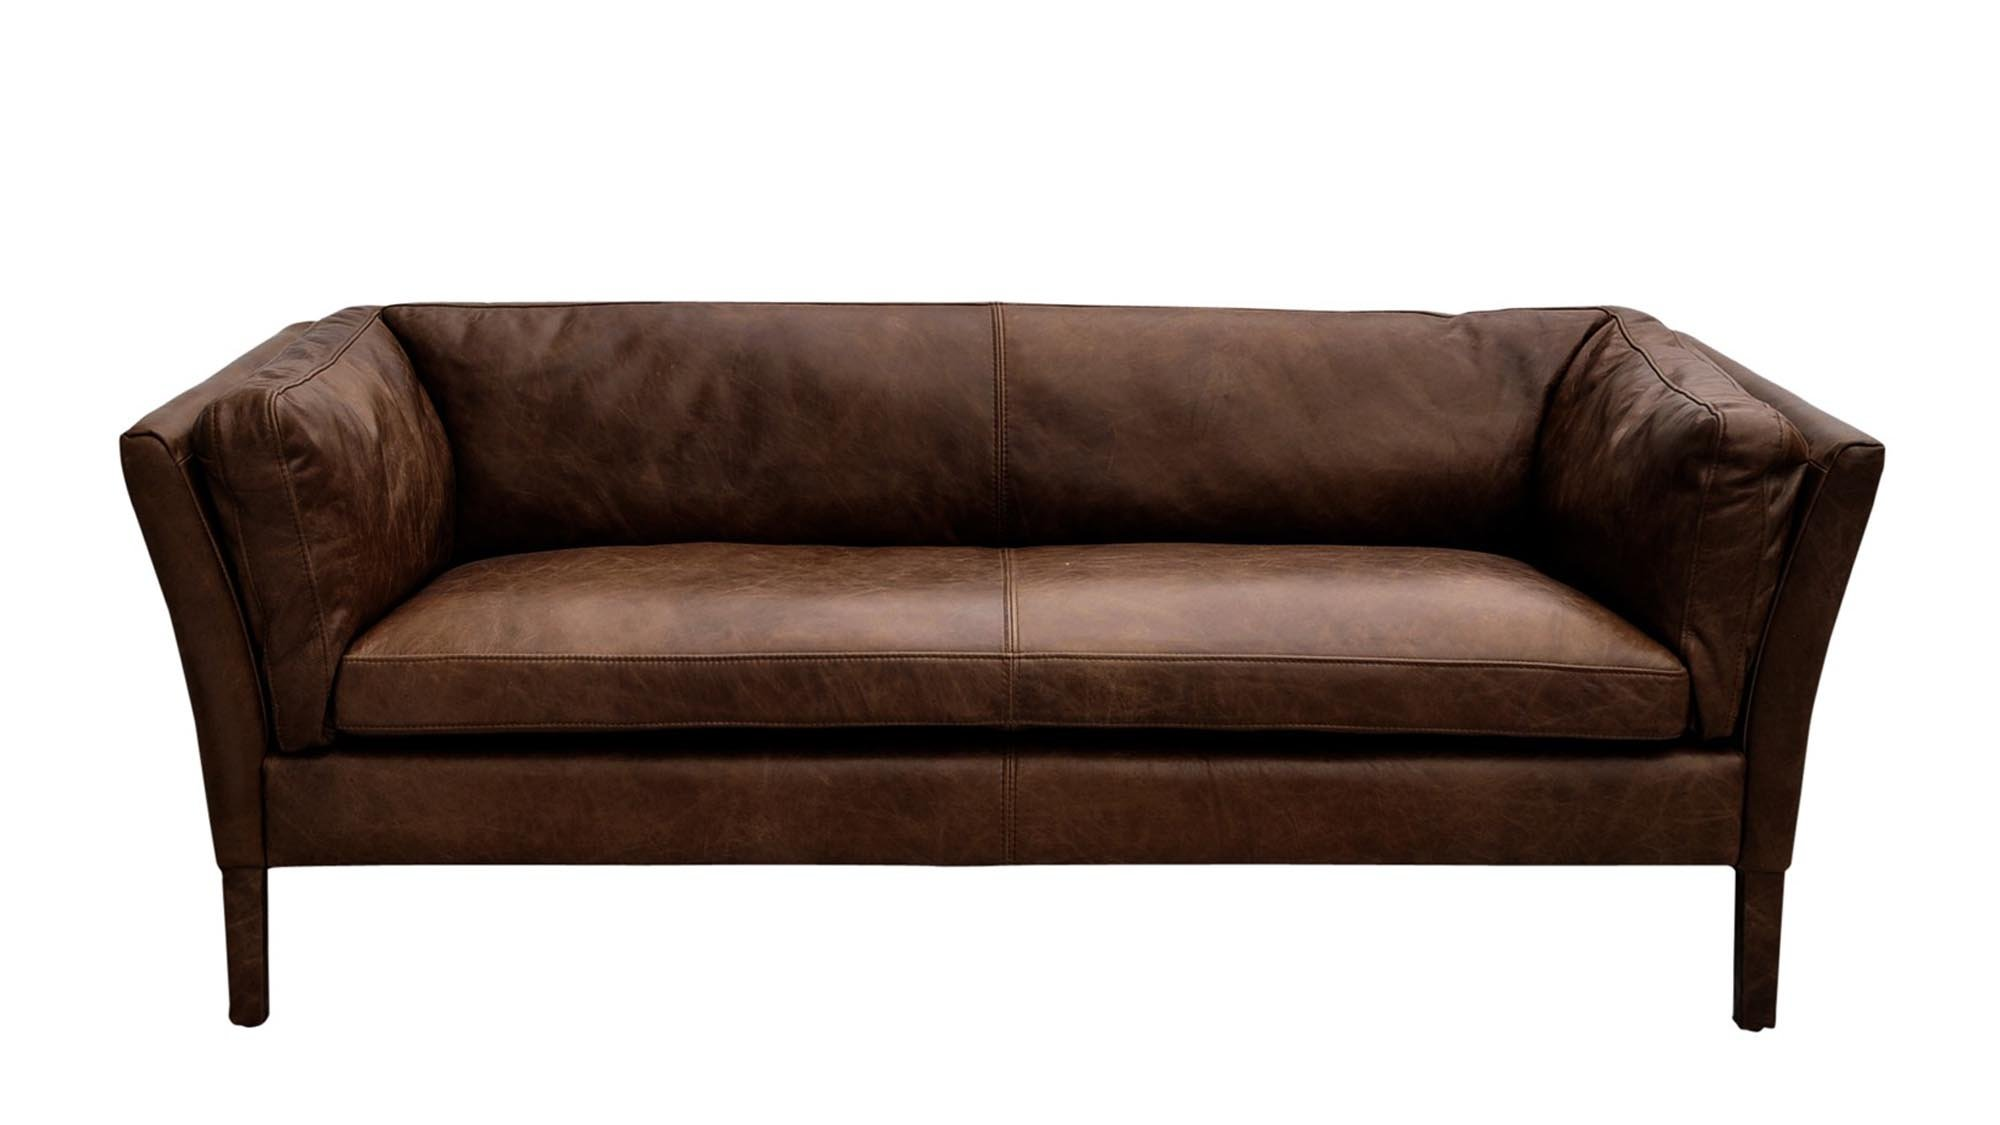 Best sofa 2018 find the perfect sofa for your living room for Cheap home furniture uk